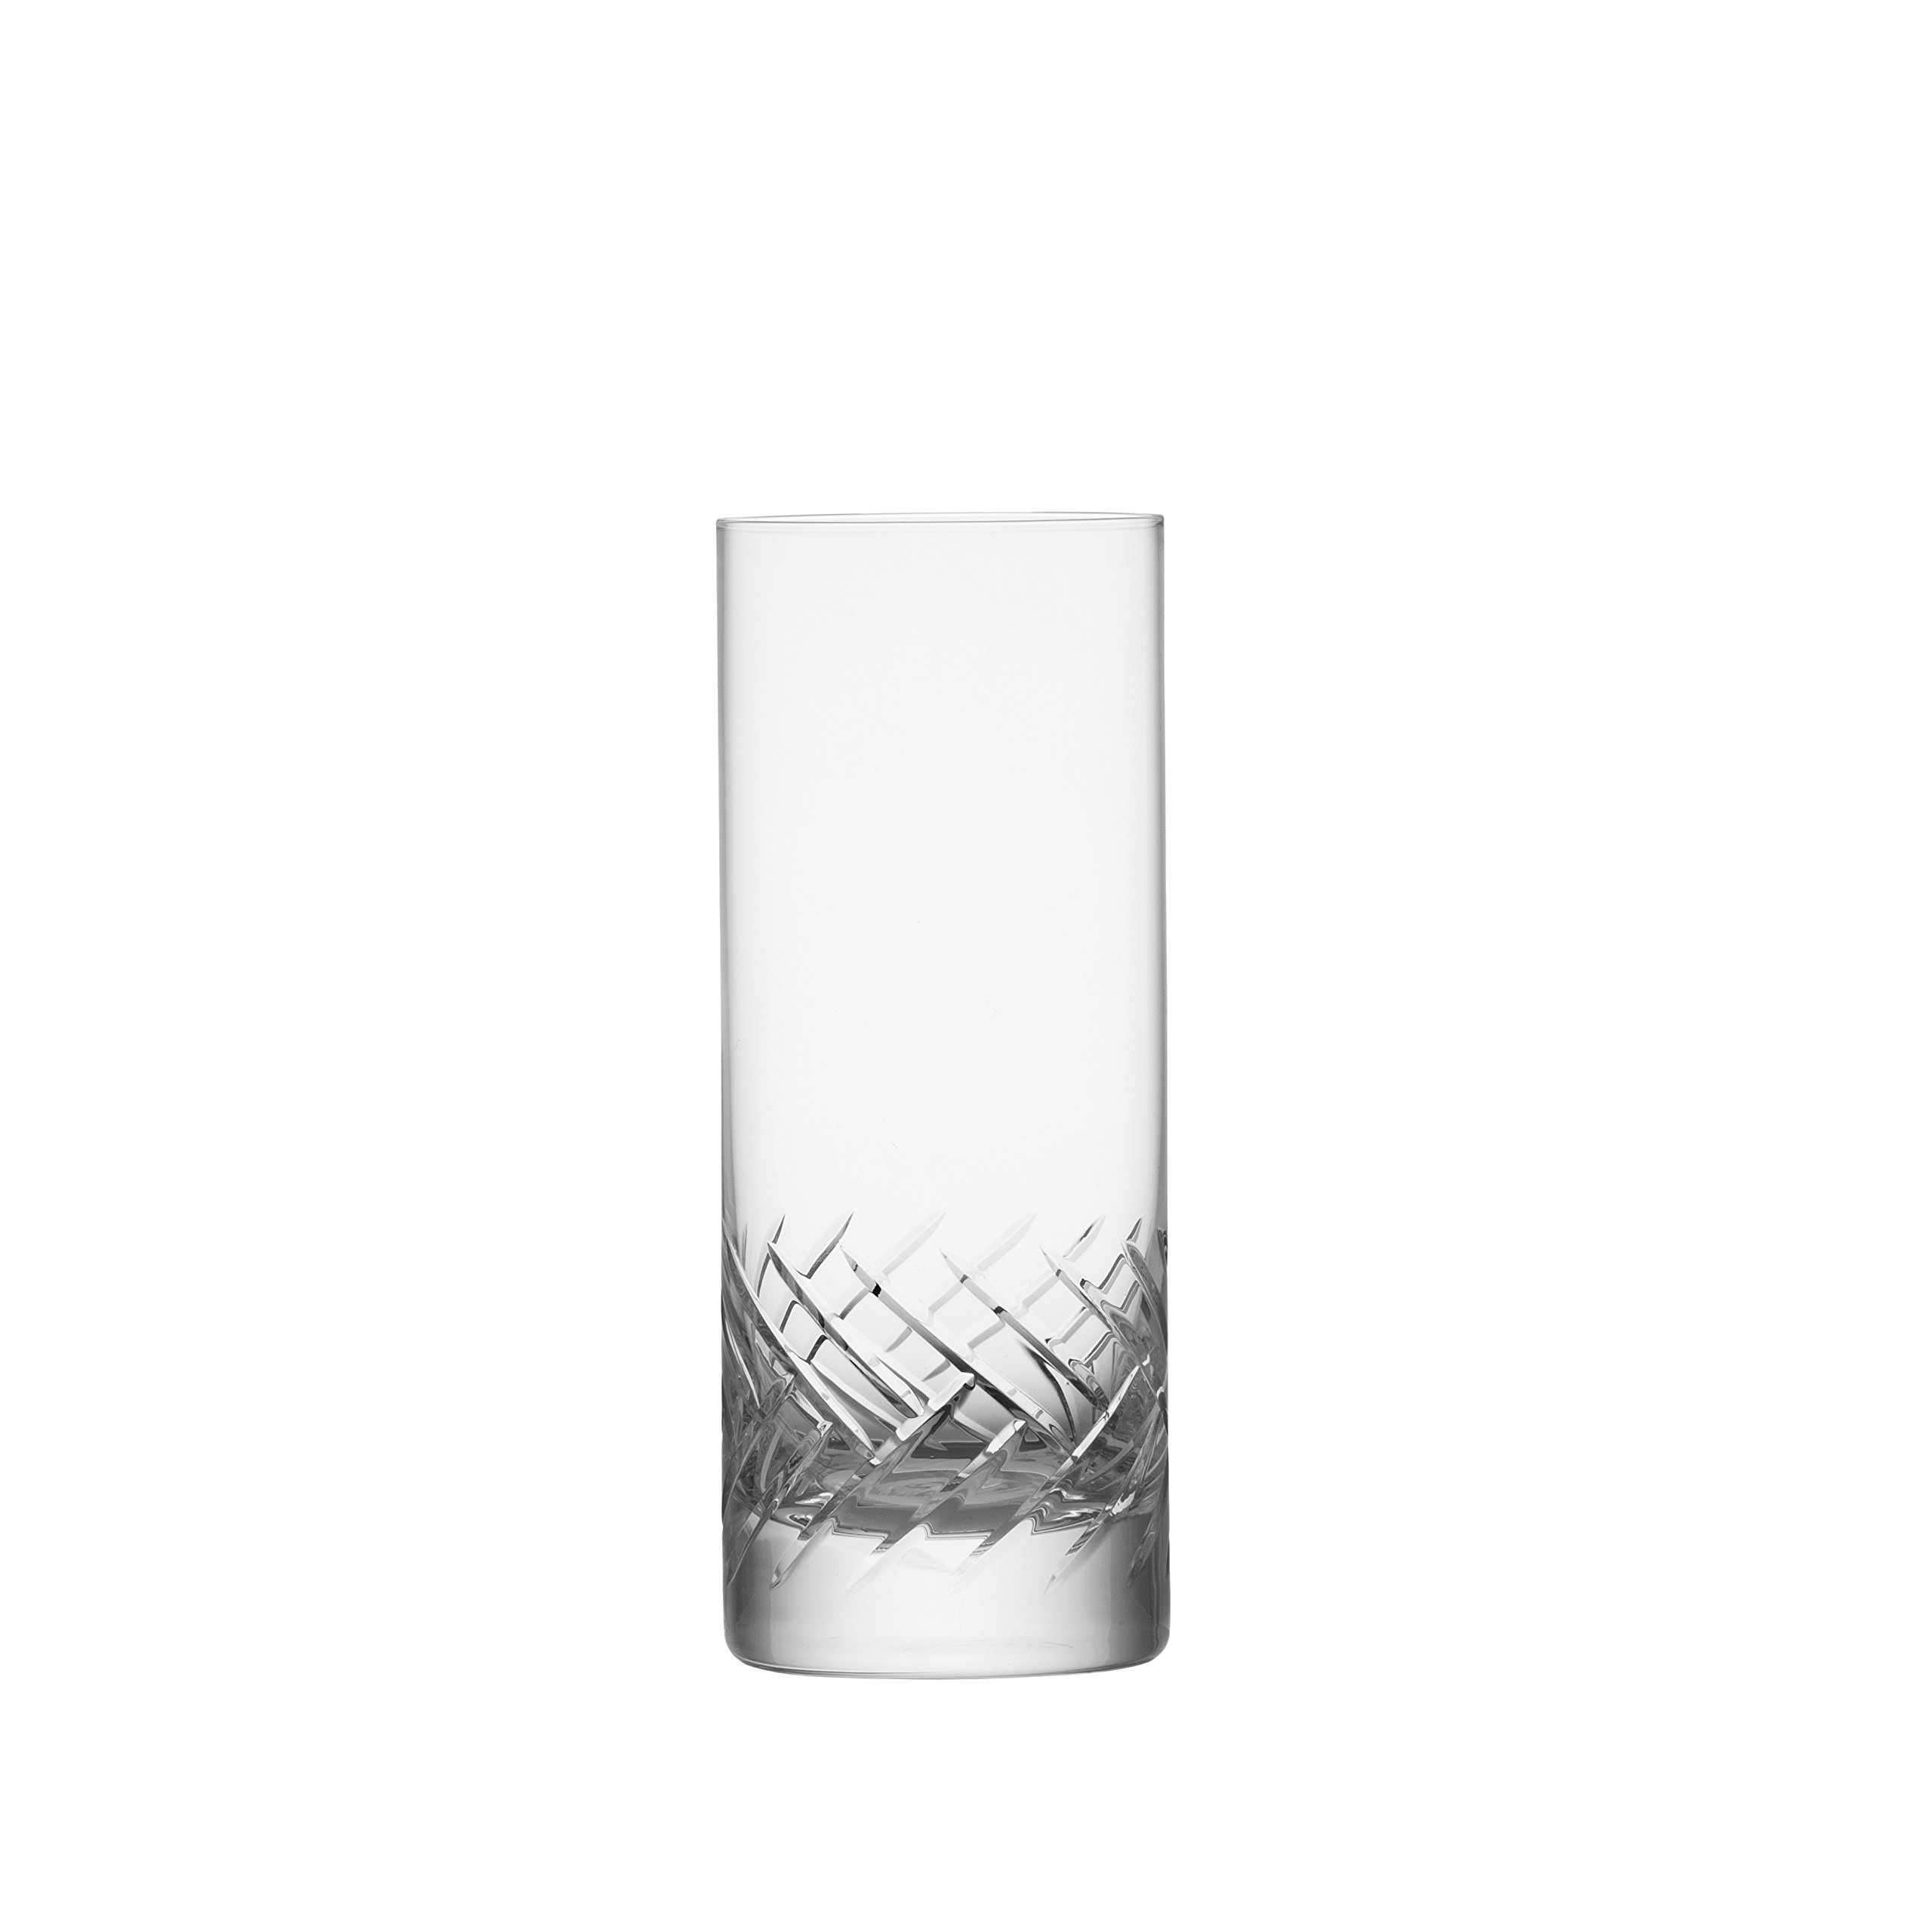 Schott Zwiesel Tritan Crystal Glass Distil Barware Collection Arran Collins Cocktail Glasses (Set of 6), 11.1 oz, Clear